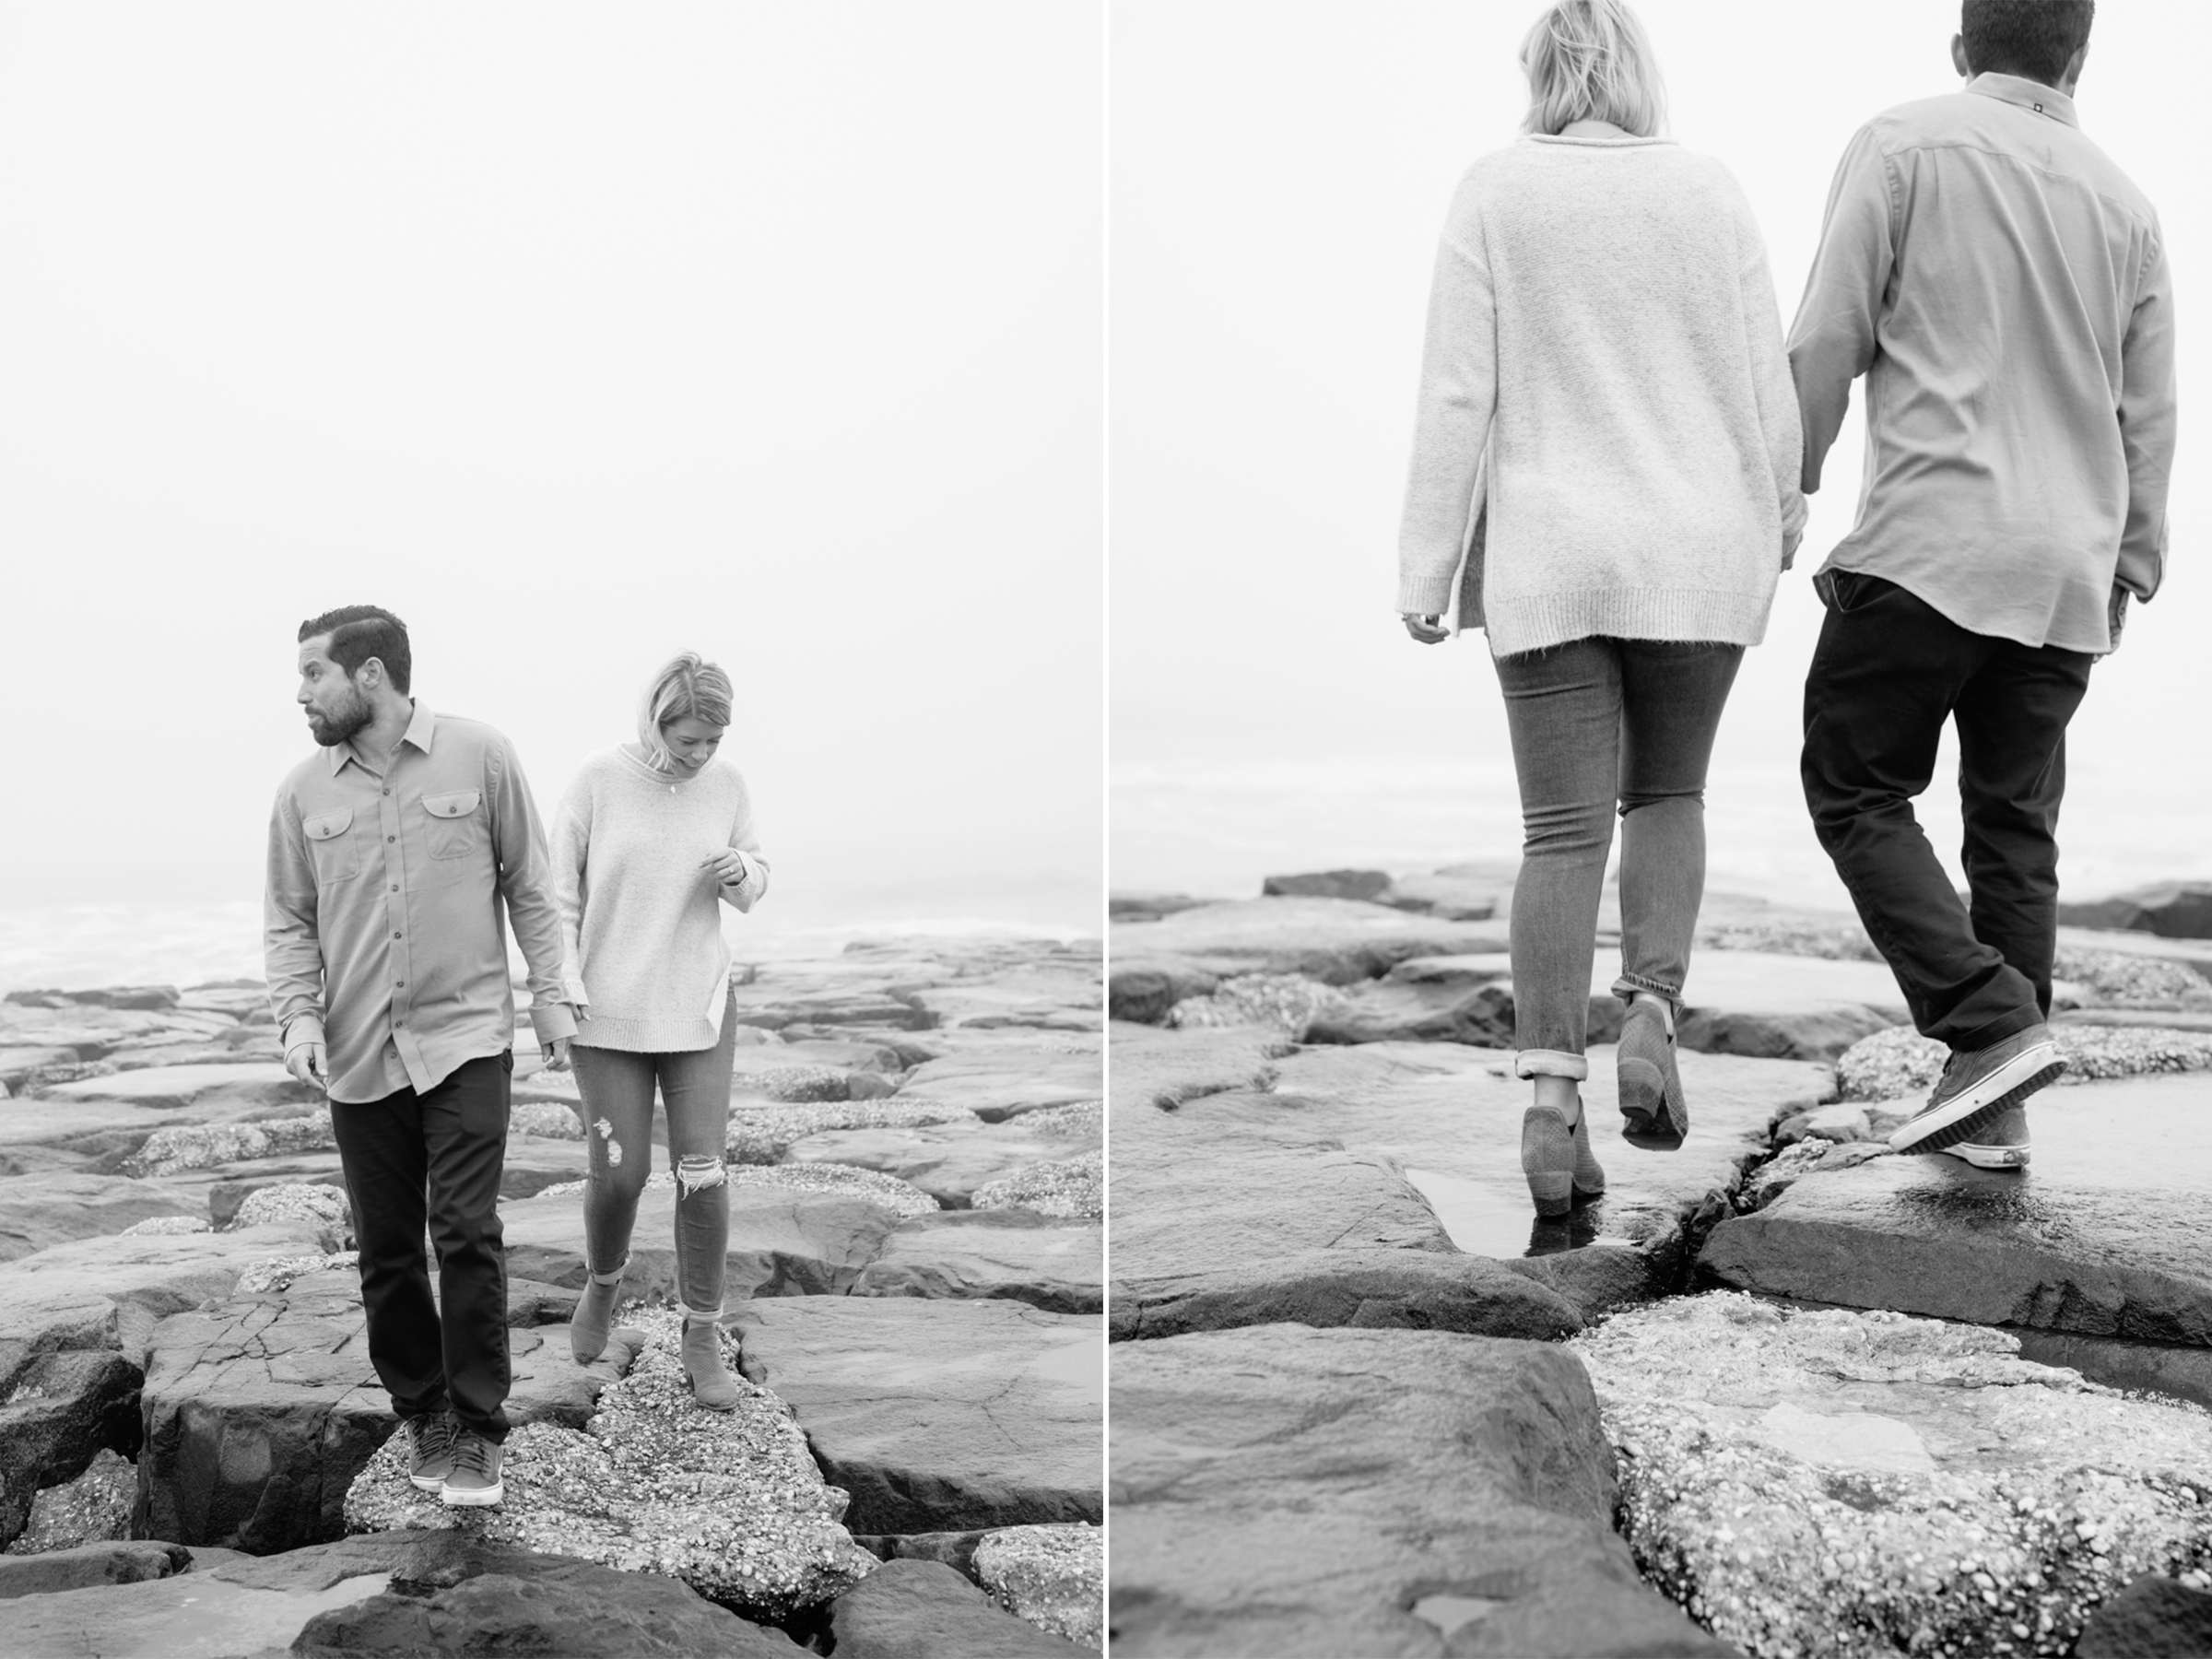 Asbury Park Engagement Session- Johanna+Danny-Ocean Jetty Rocks-New Jersey- Olivia Christina Photo-1.jpg